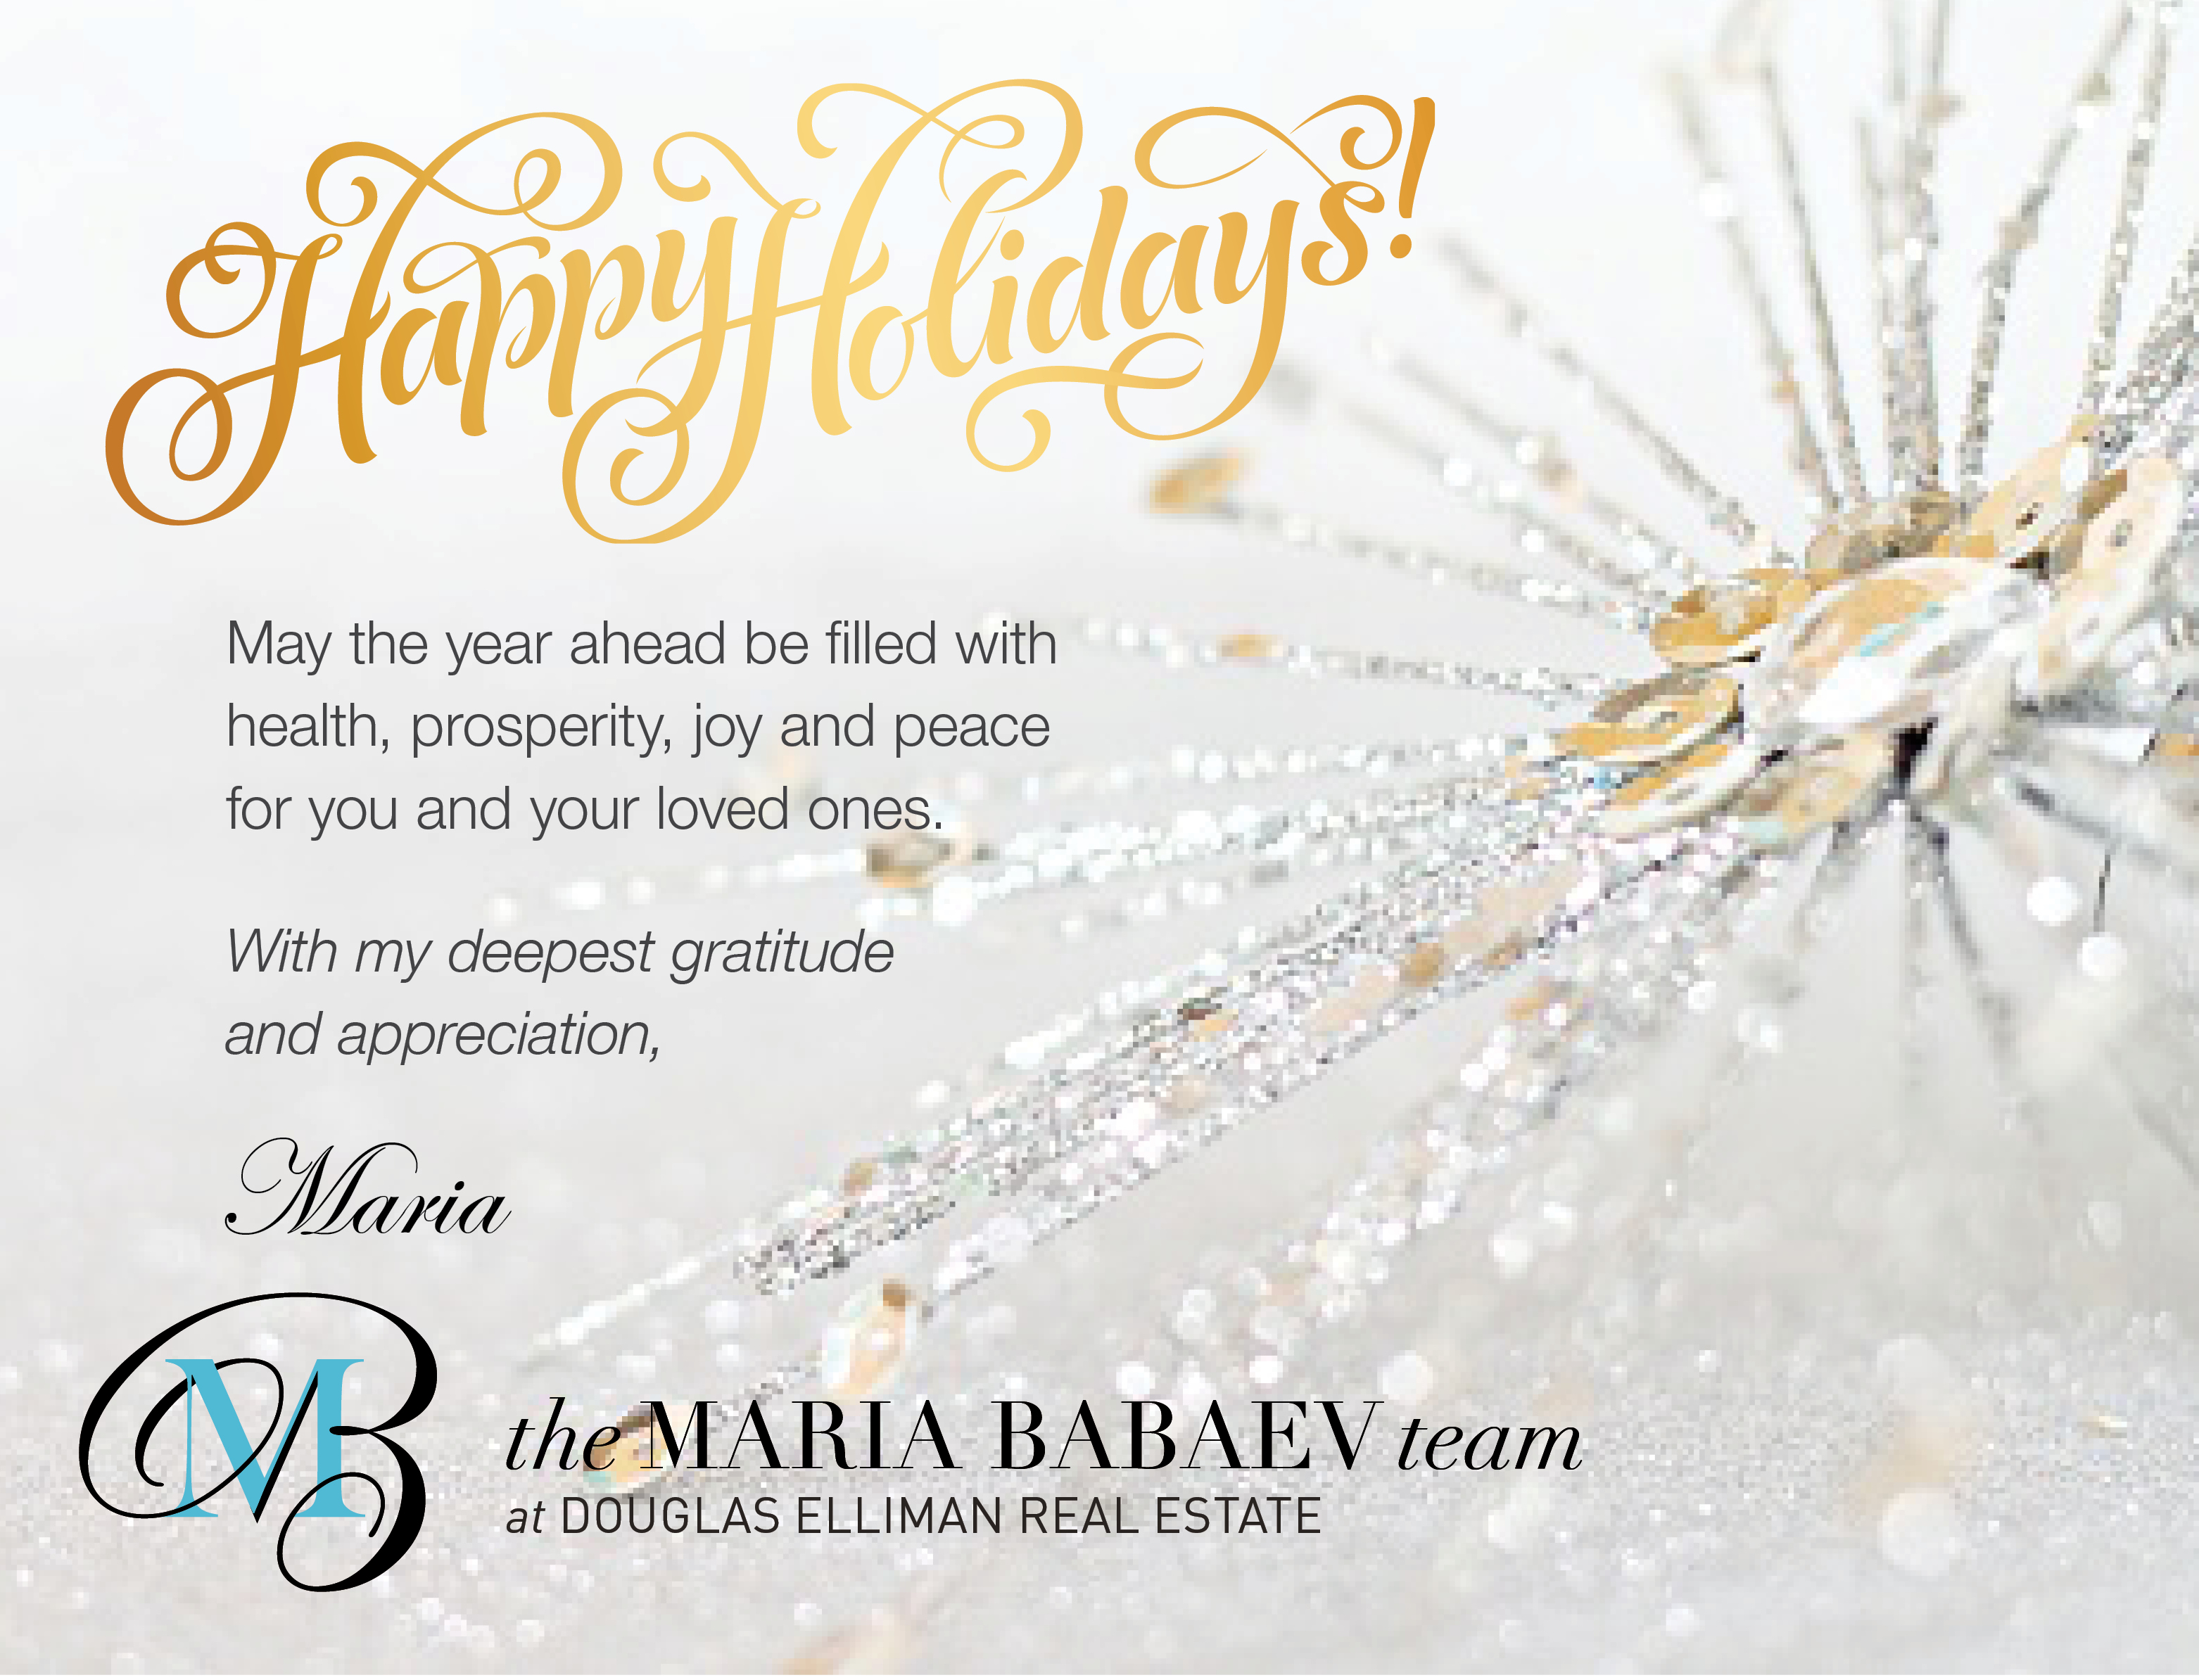 Happy Holidays From The Maria Babaev Team!